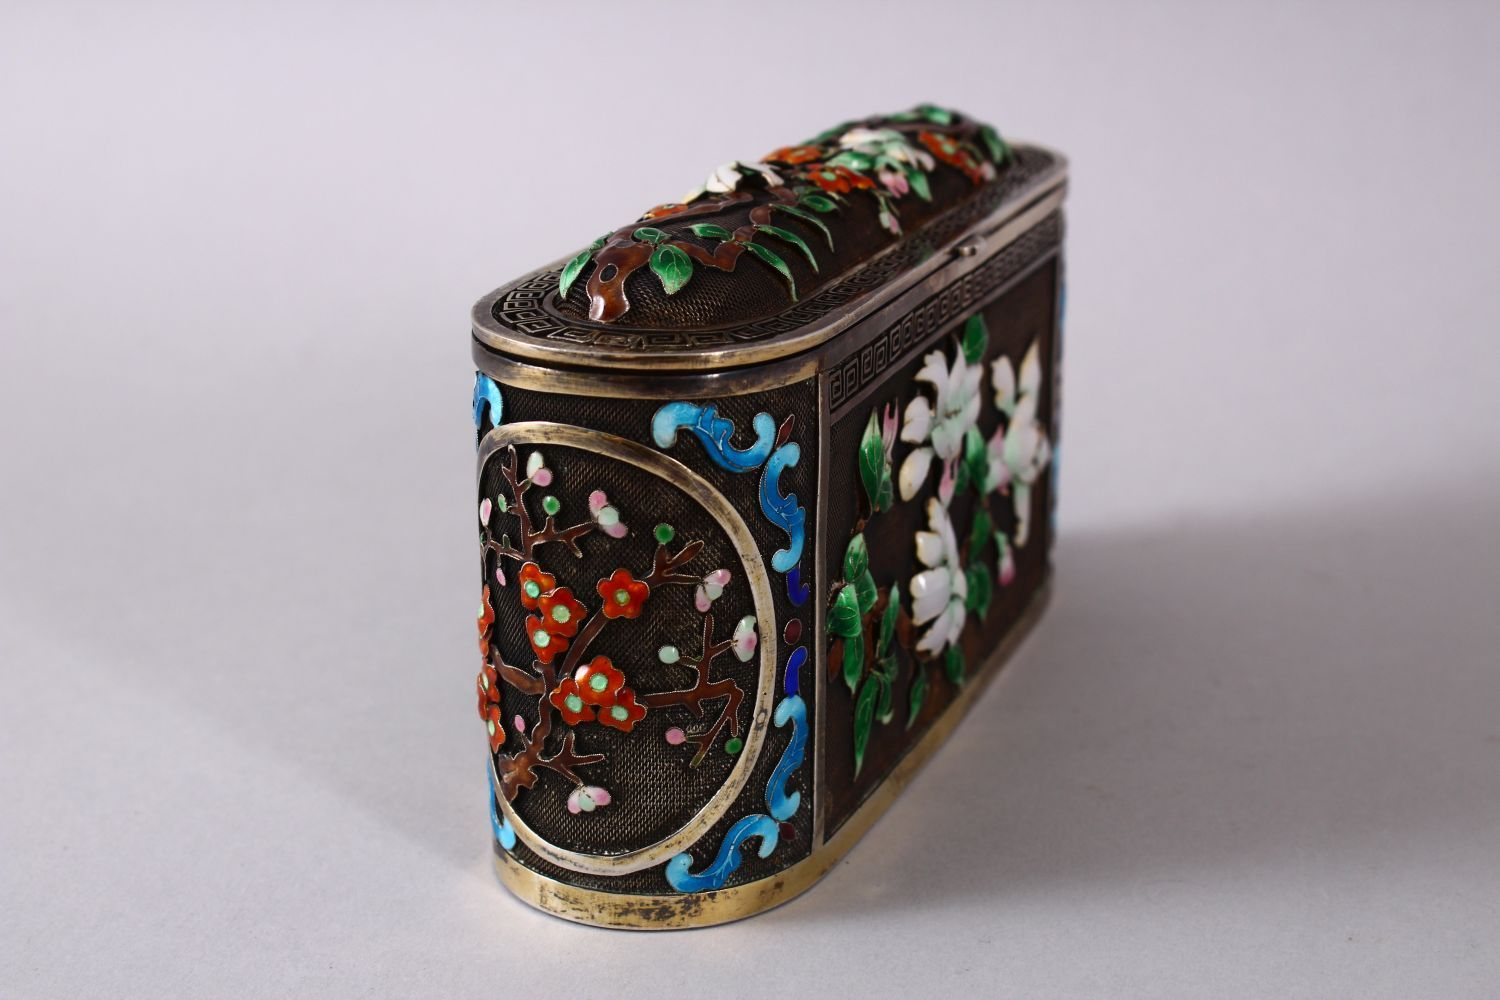 A CHINESE SILVER & ENAMEL LIDDED BOX, with enamel decoration of native flora, base marked silver, - Image 3 of 10